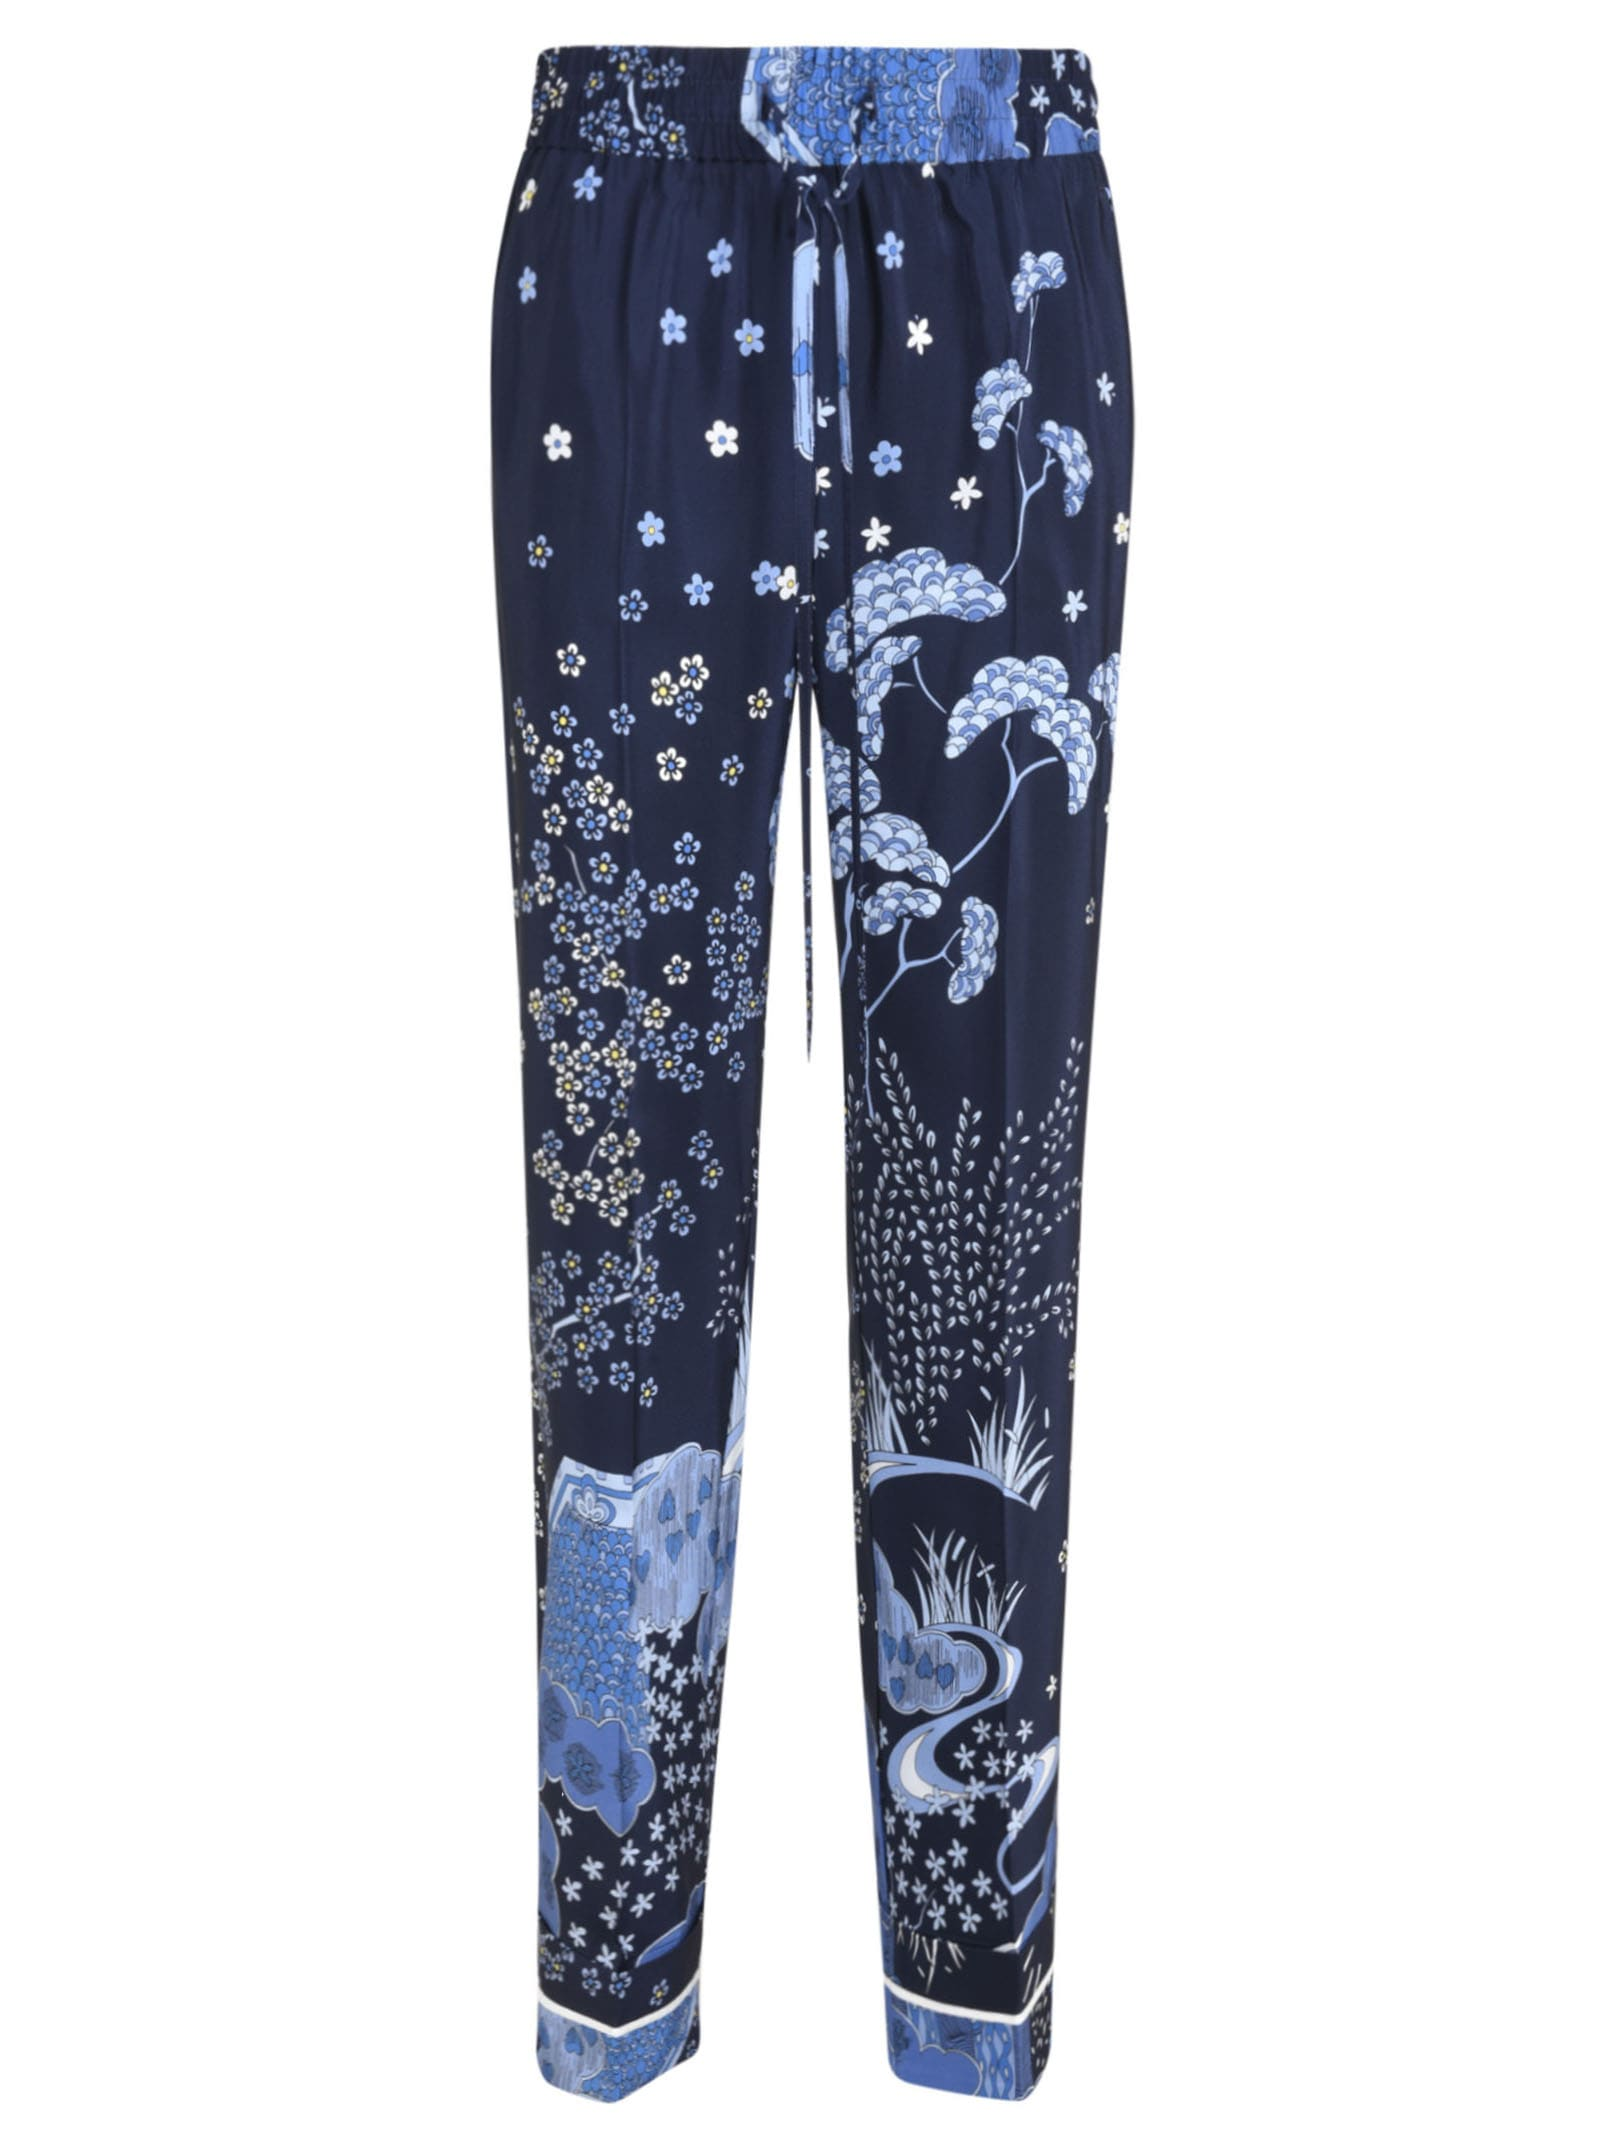 RED Valentino Floral Printed Trousers